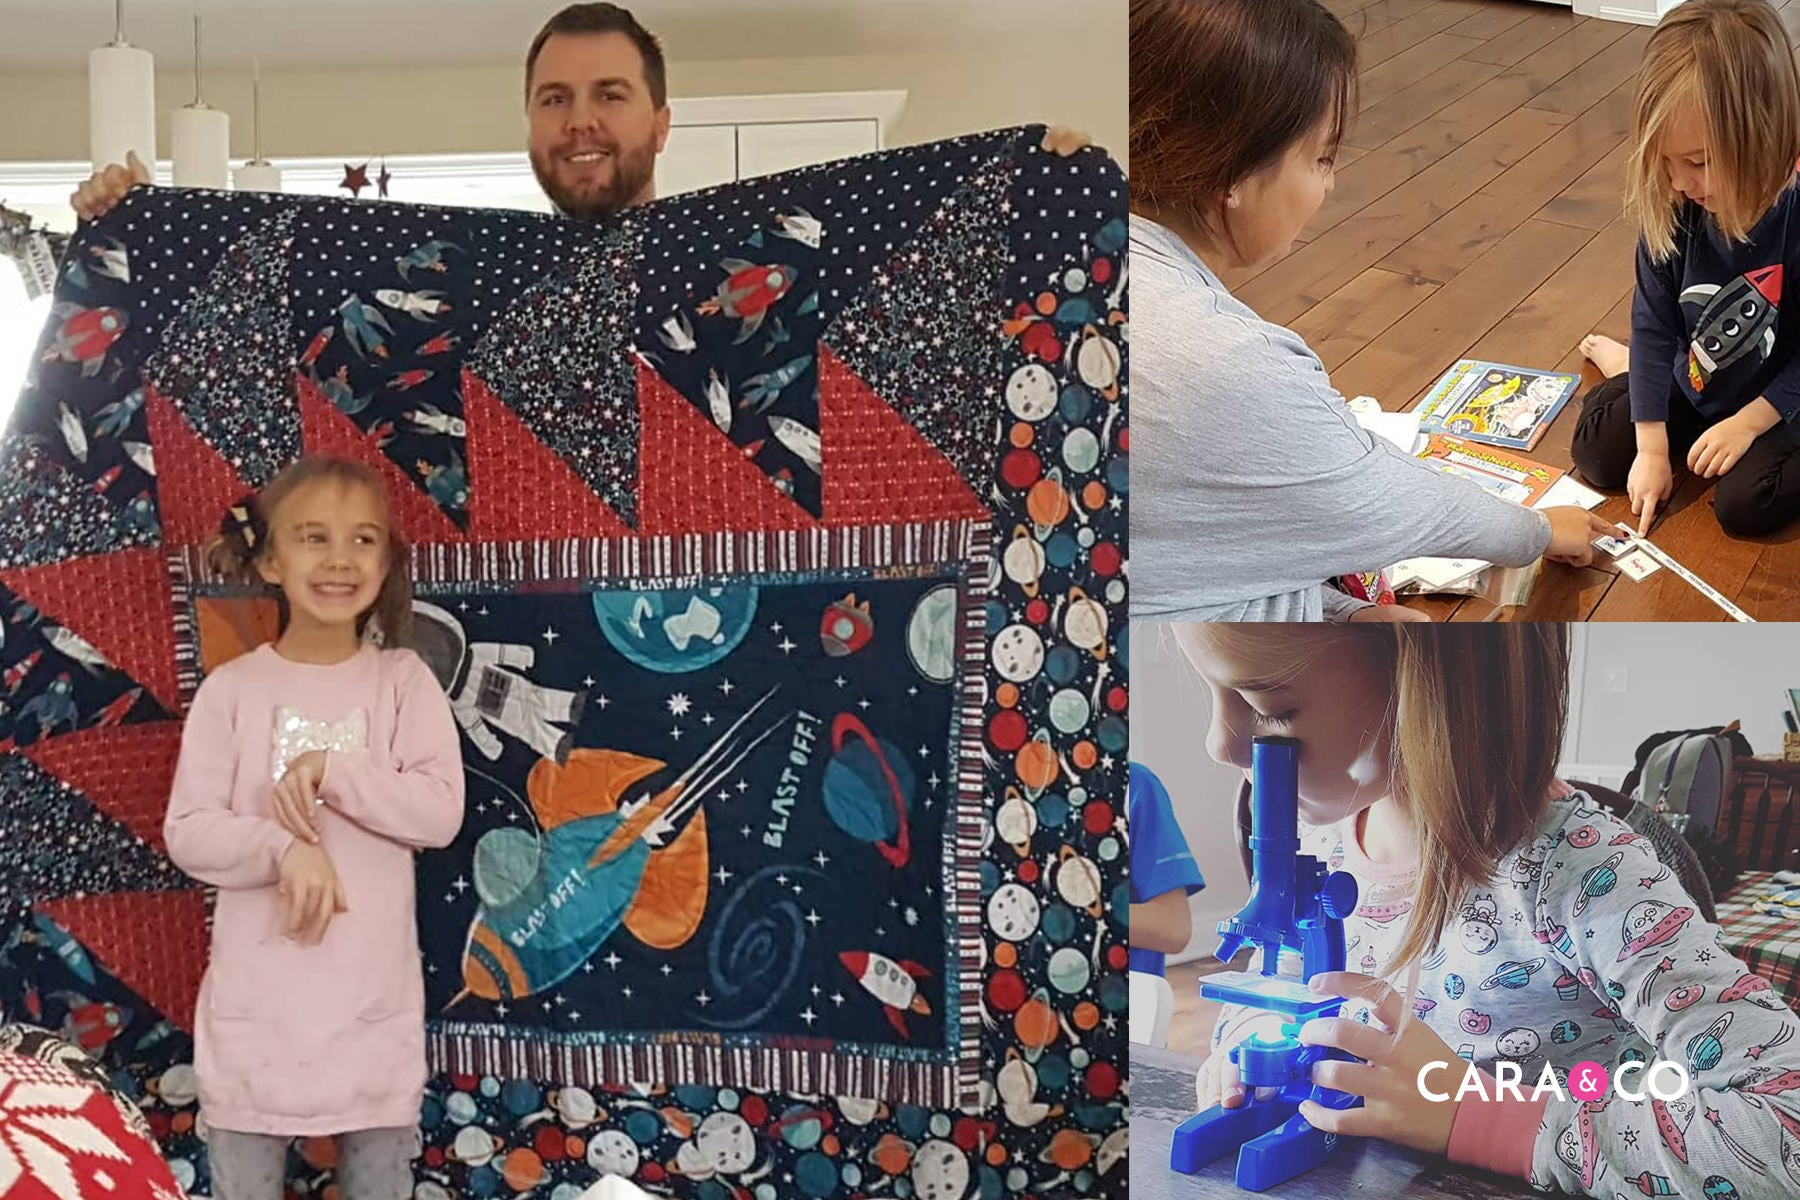 World Autism Month - A Family's Journey - Cara & Co